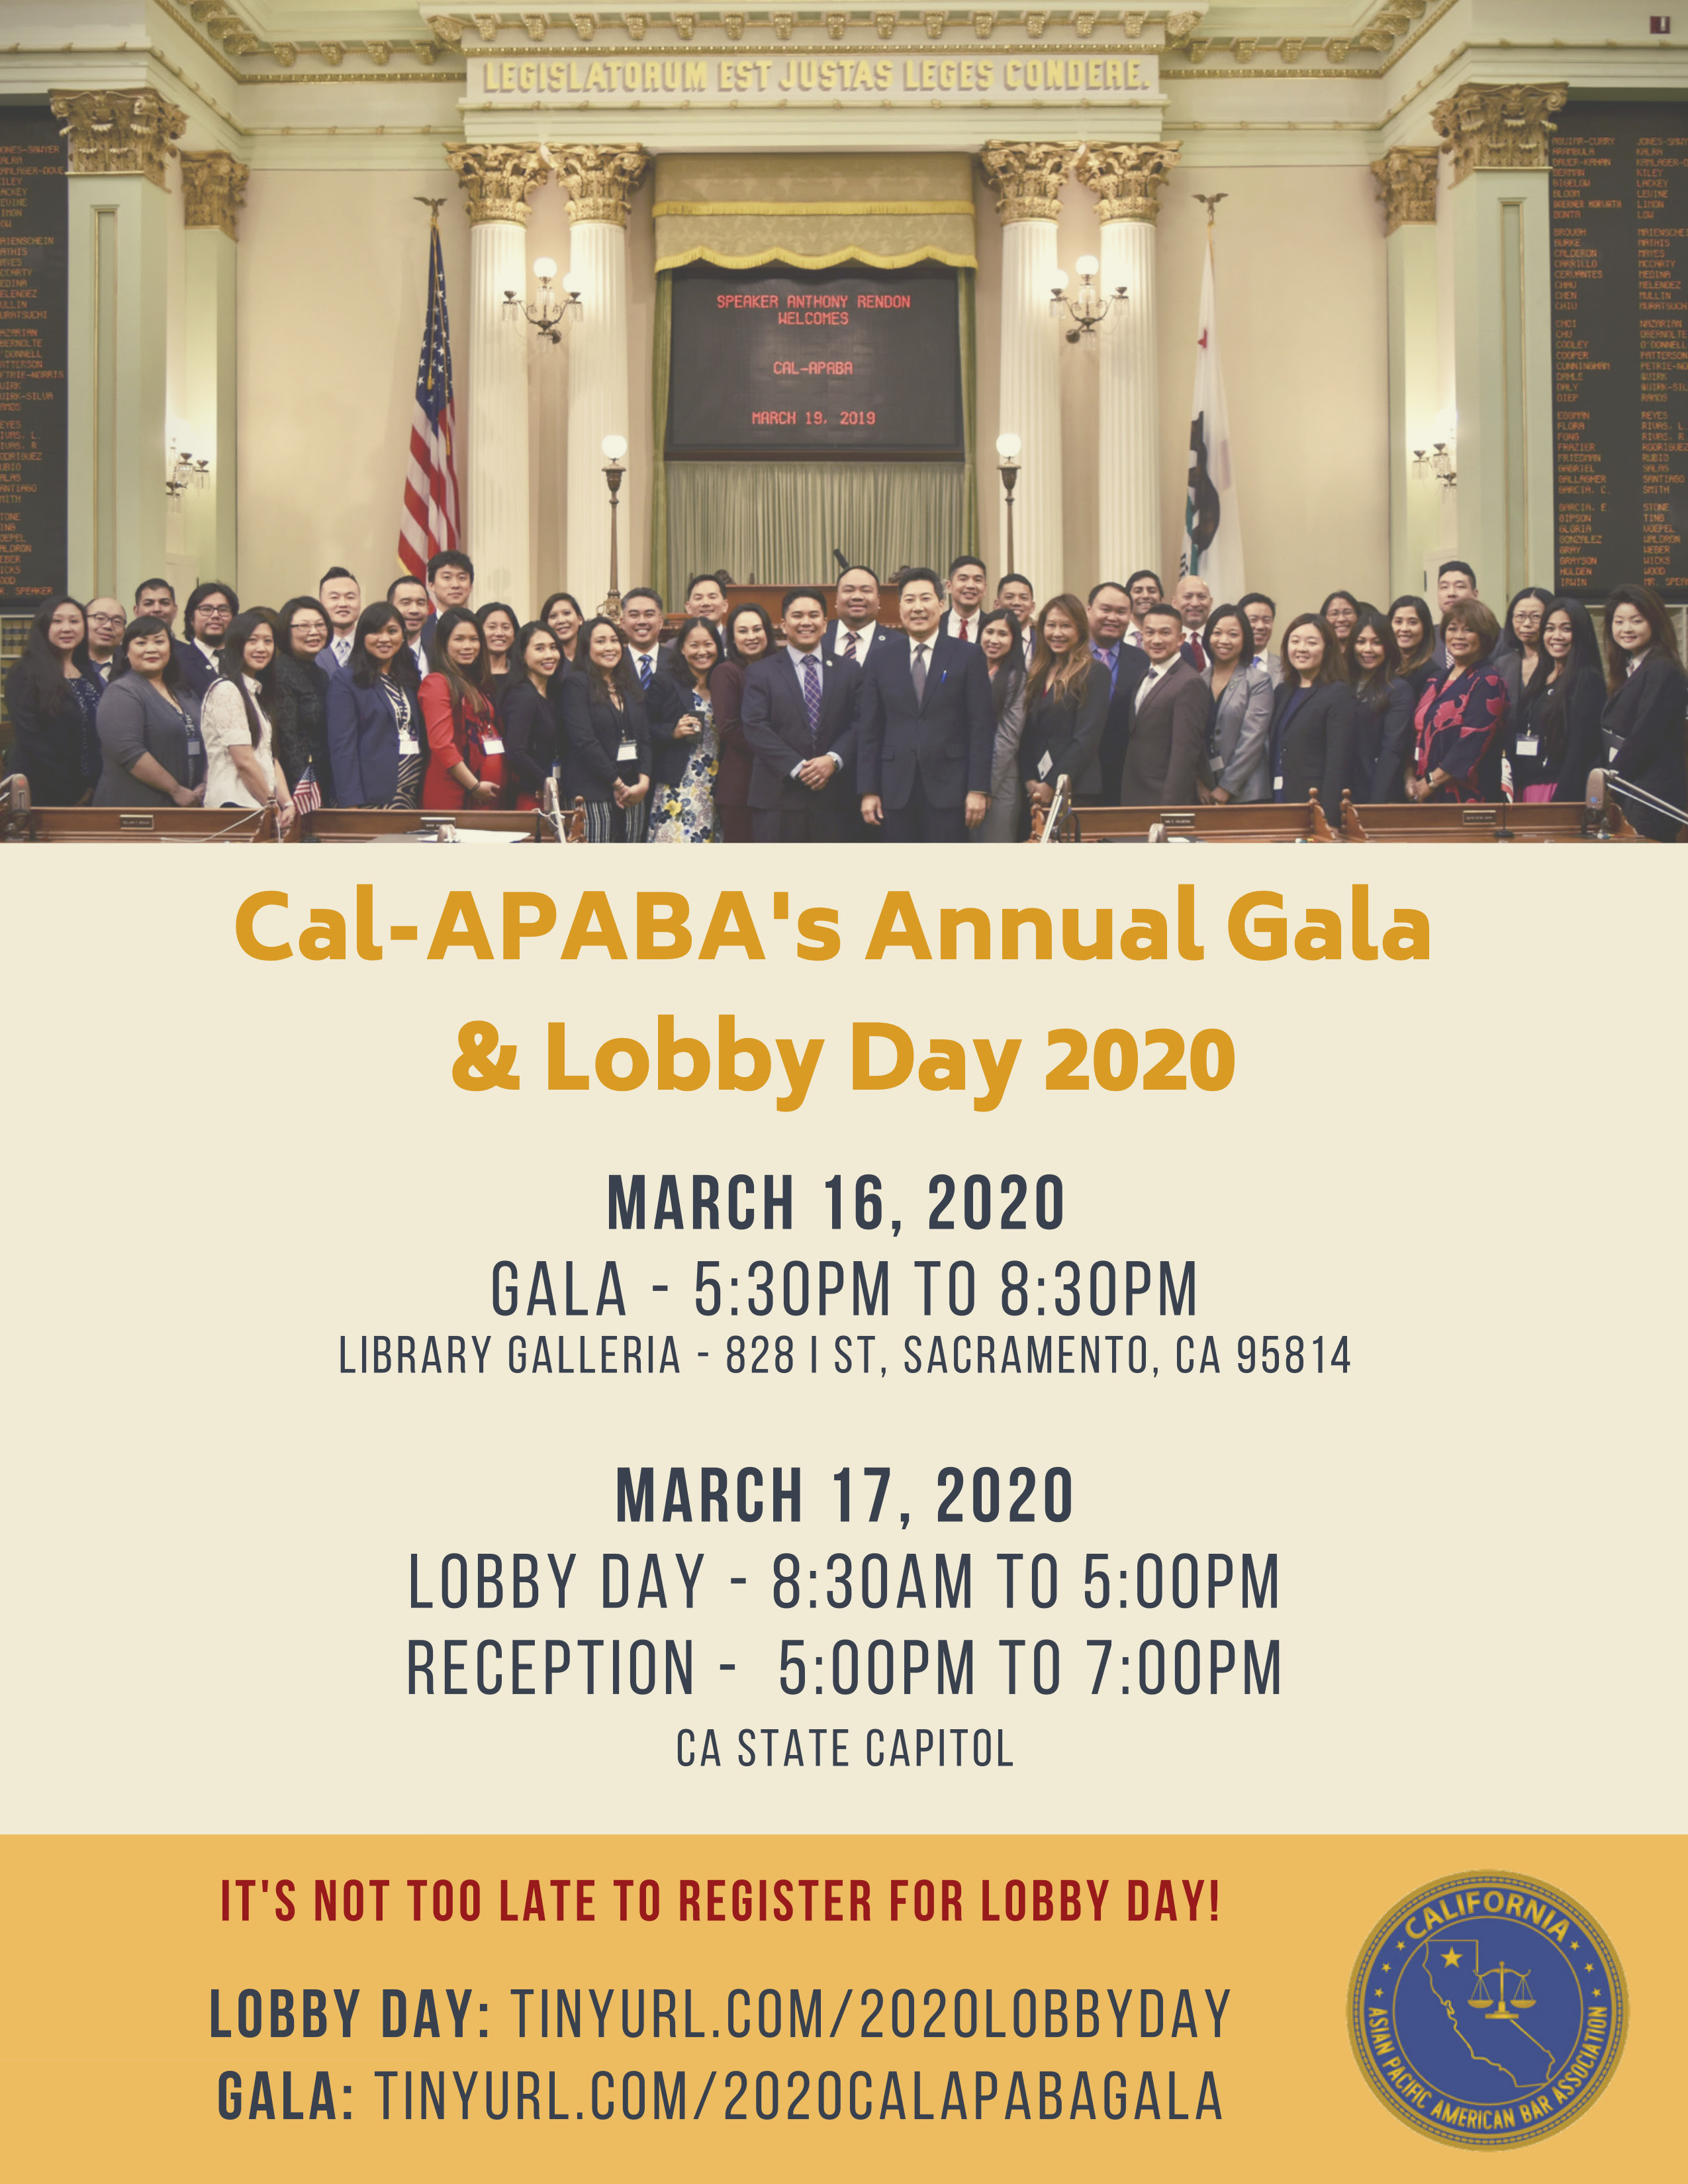 Affiliate Event – Mar 16 to 17 – Cal-APABA Gala and Lobby Day